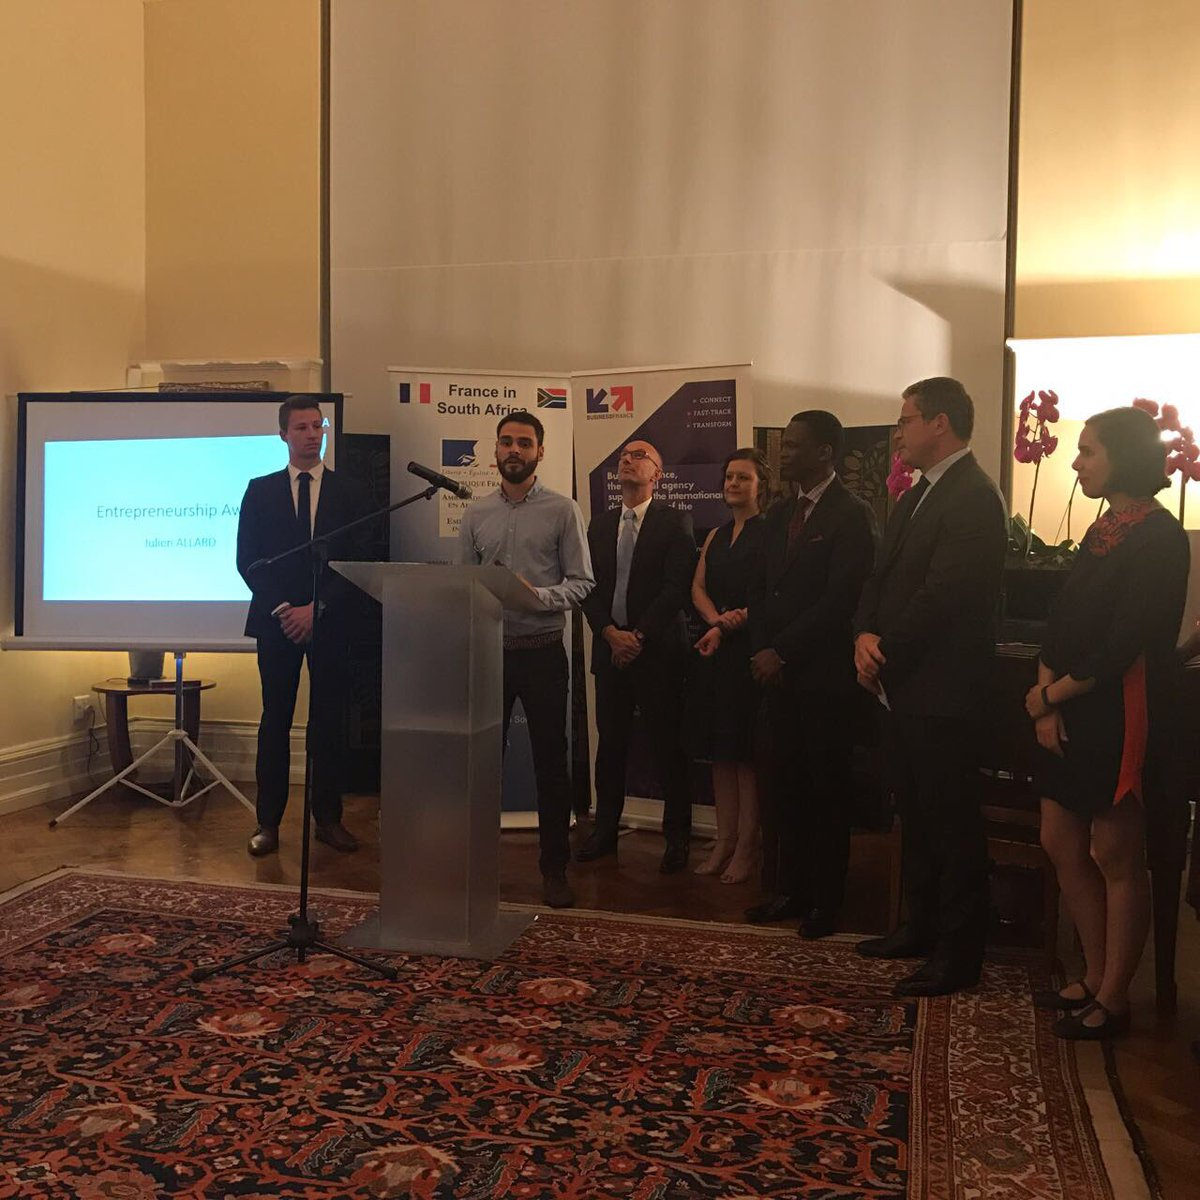 Congrats to Antoine Petit from @Faurecia who won the #innovation prize! #FranceinSA #VIE <br>http://pic.twitter.com/yekK4N5uRW